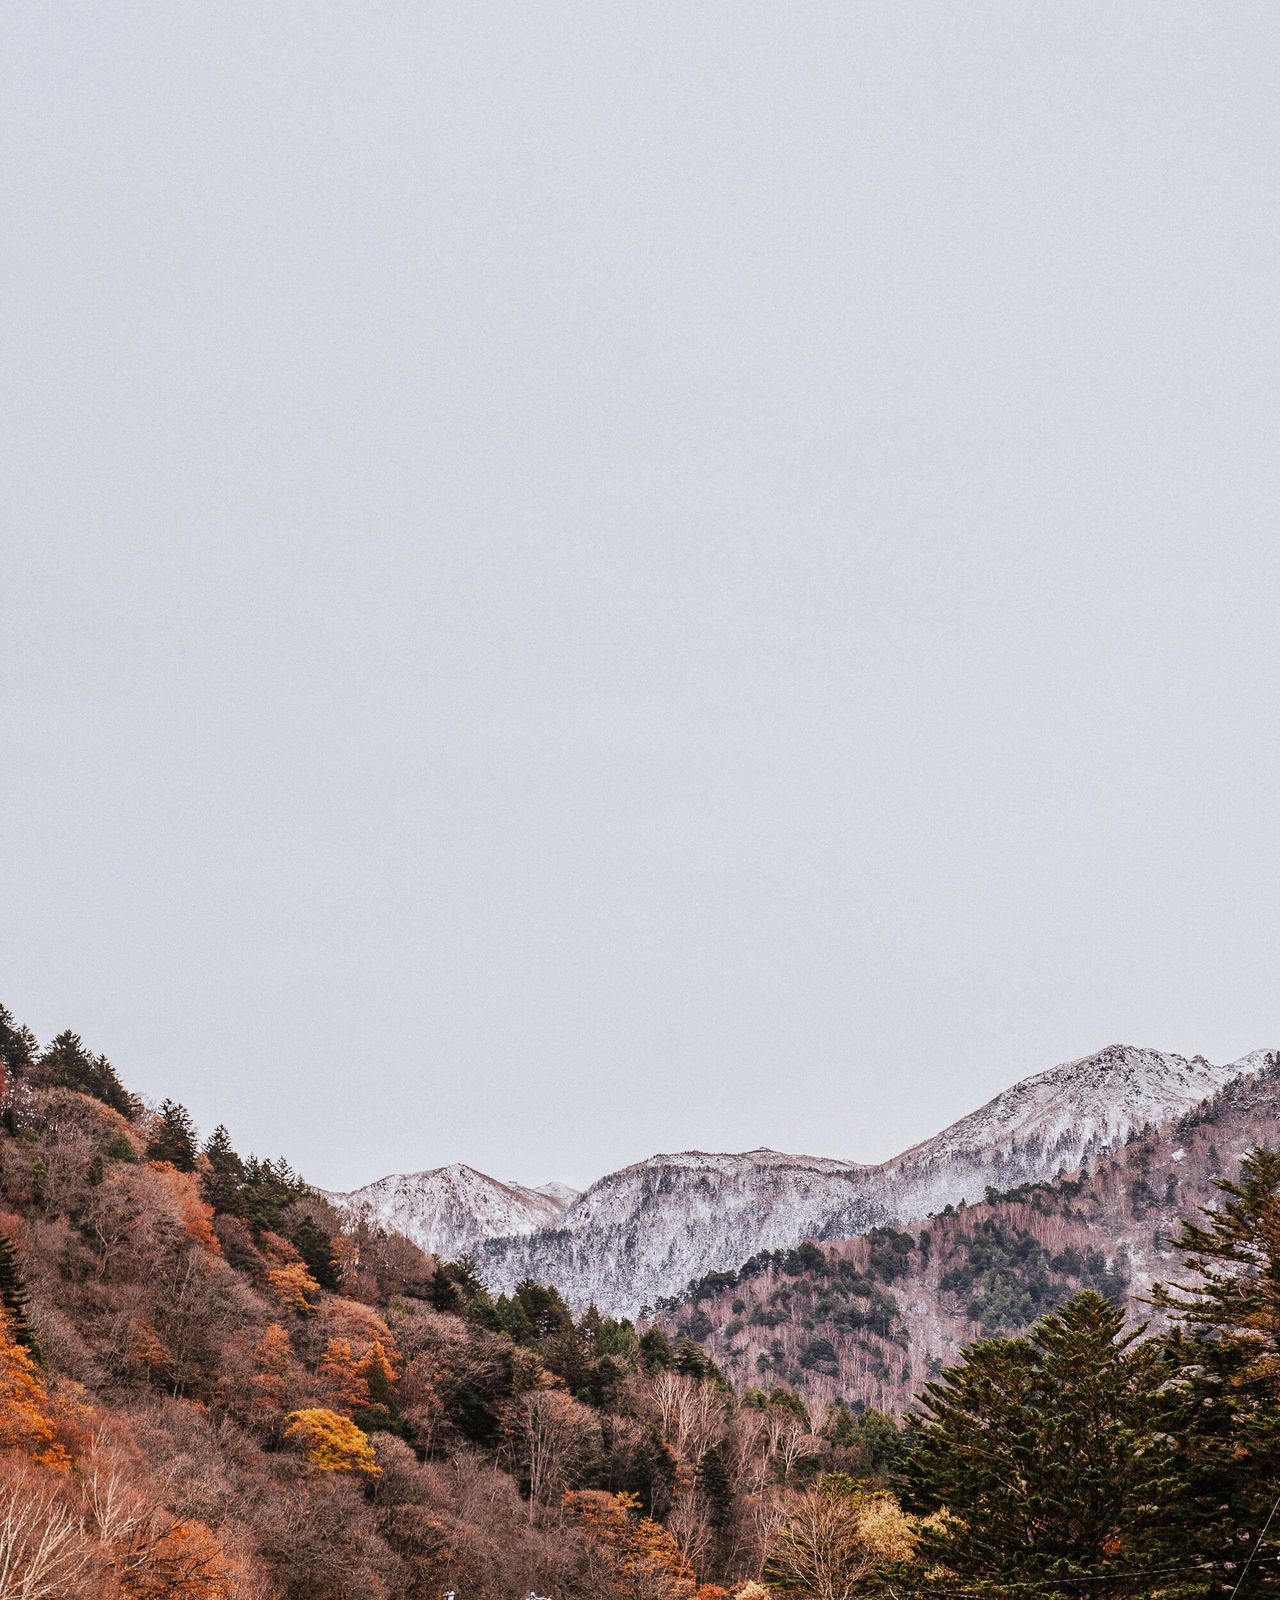 🚌🏔🇯🇵 Mountain Nature Scenics No People Tranquil Scene Tranquility Outdoors Mountain Range Landscape Beauty In Nature Travel Destinations EyeEmBestPics EyeEm Best Edits Things I Like Japan Photography Travel Photography Japan Finding New Frontiers Mountains Outdoor Photography Outdoors Photograpghy